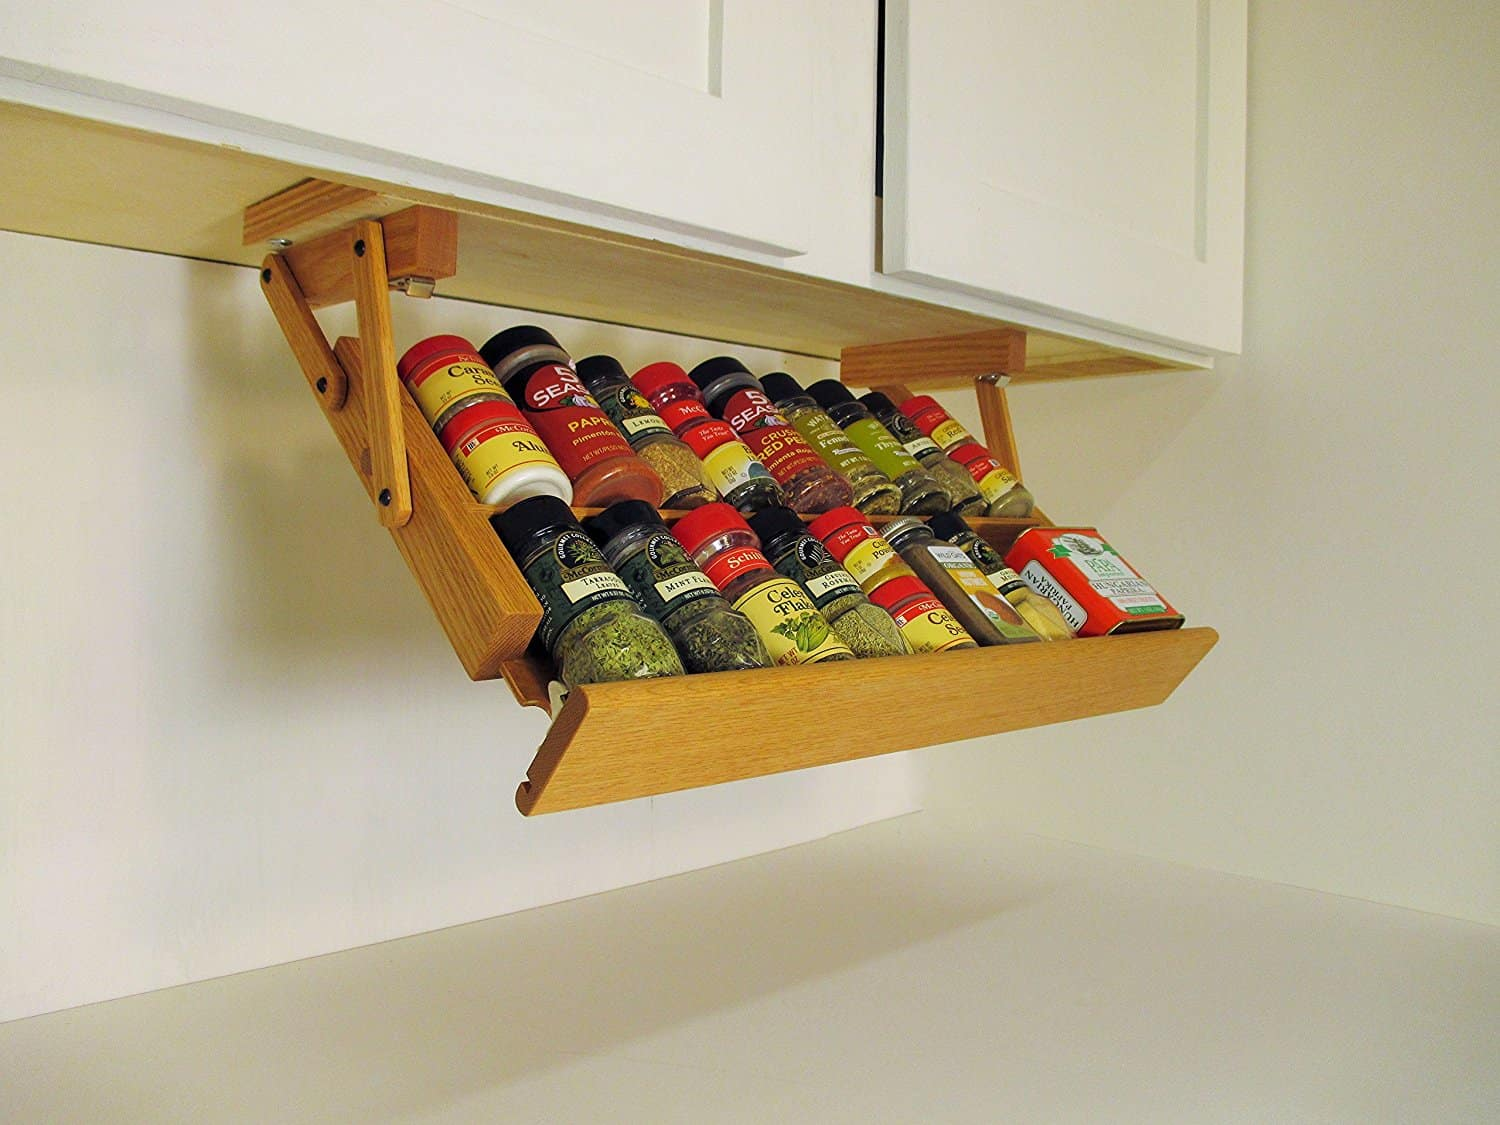 Double Rv Spice Rack Trailer Storage Pull Down Spice Rack Target Pull Down Spice Rack Ireland houzz-02 Pull Down Spice Rack